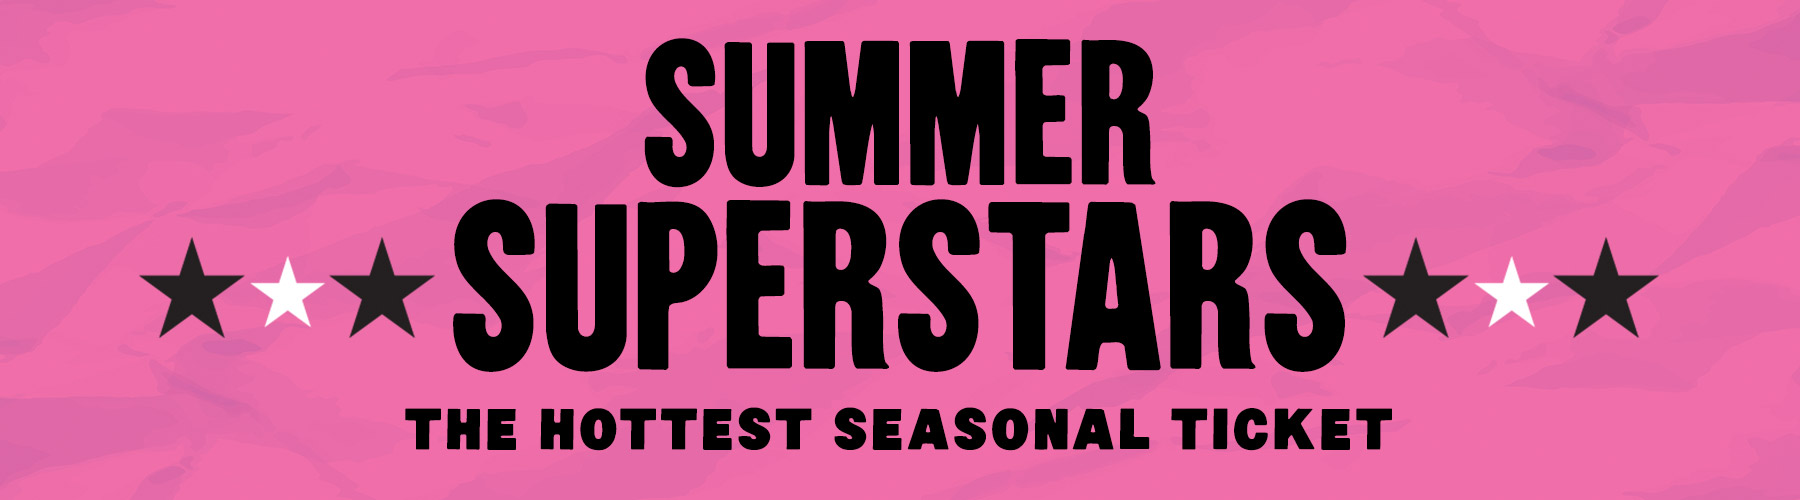 pink background with black text reading summer superstars the hottest seasonal ticket